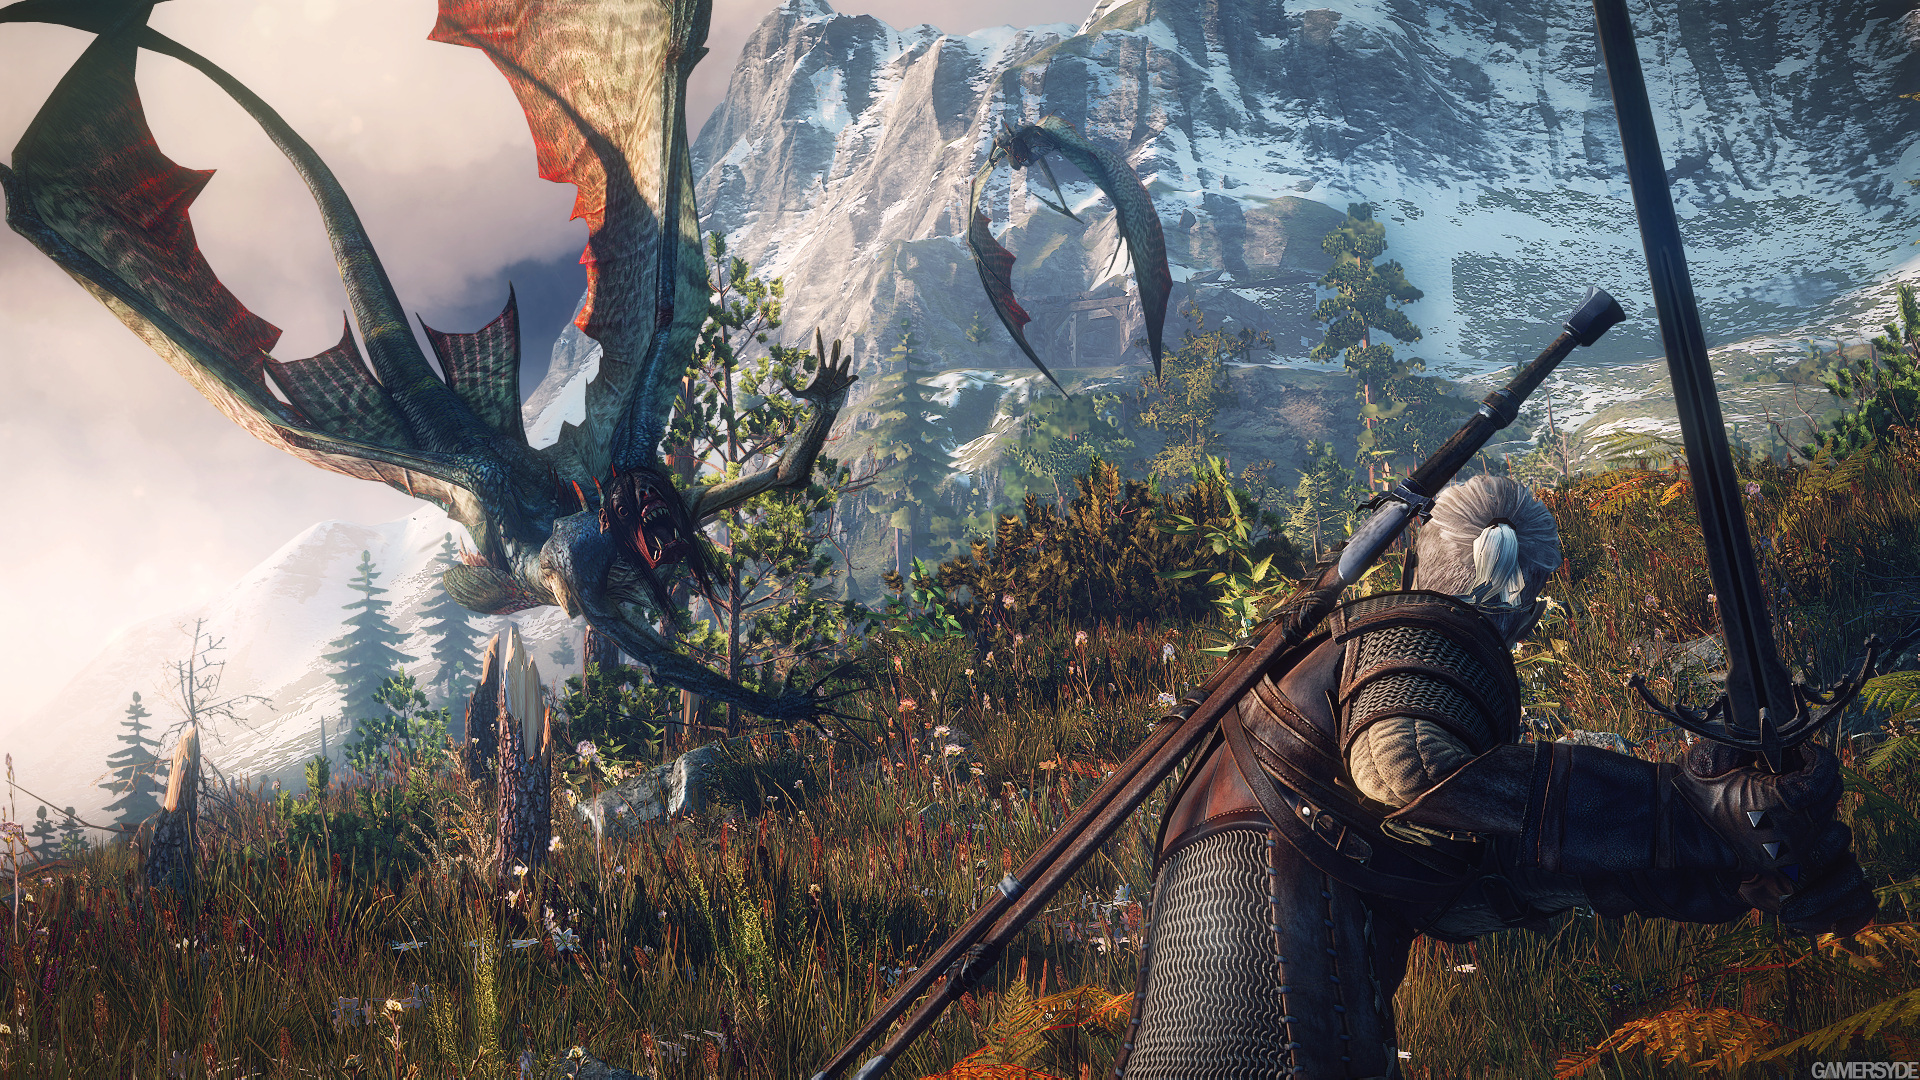 Witcher 3 Image_the_witcher_3_wild_hunt-22370-2651_0009